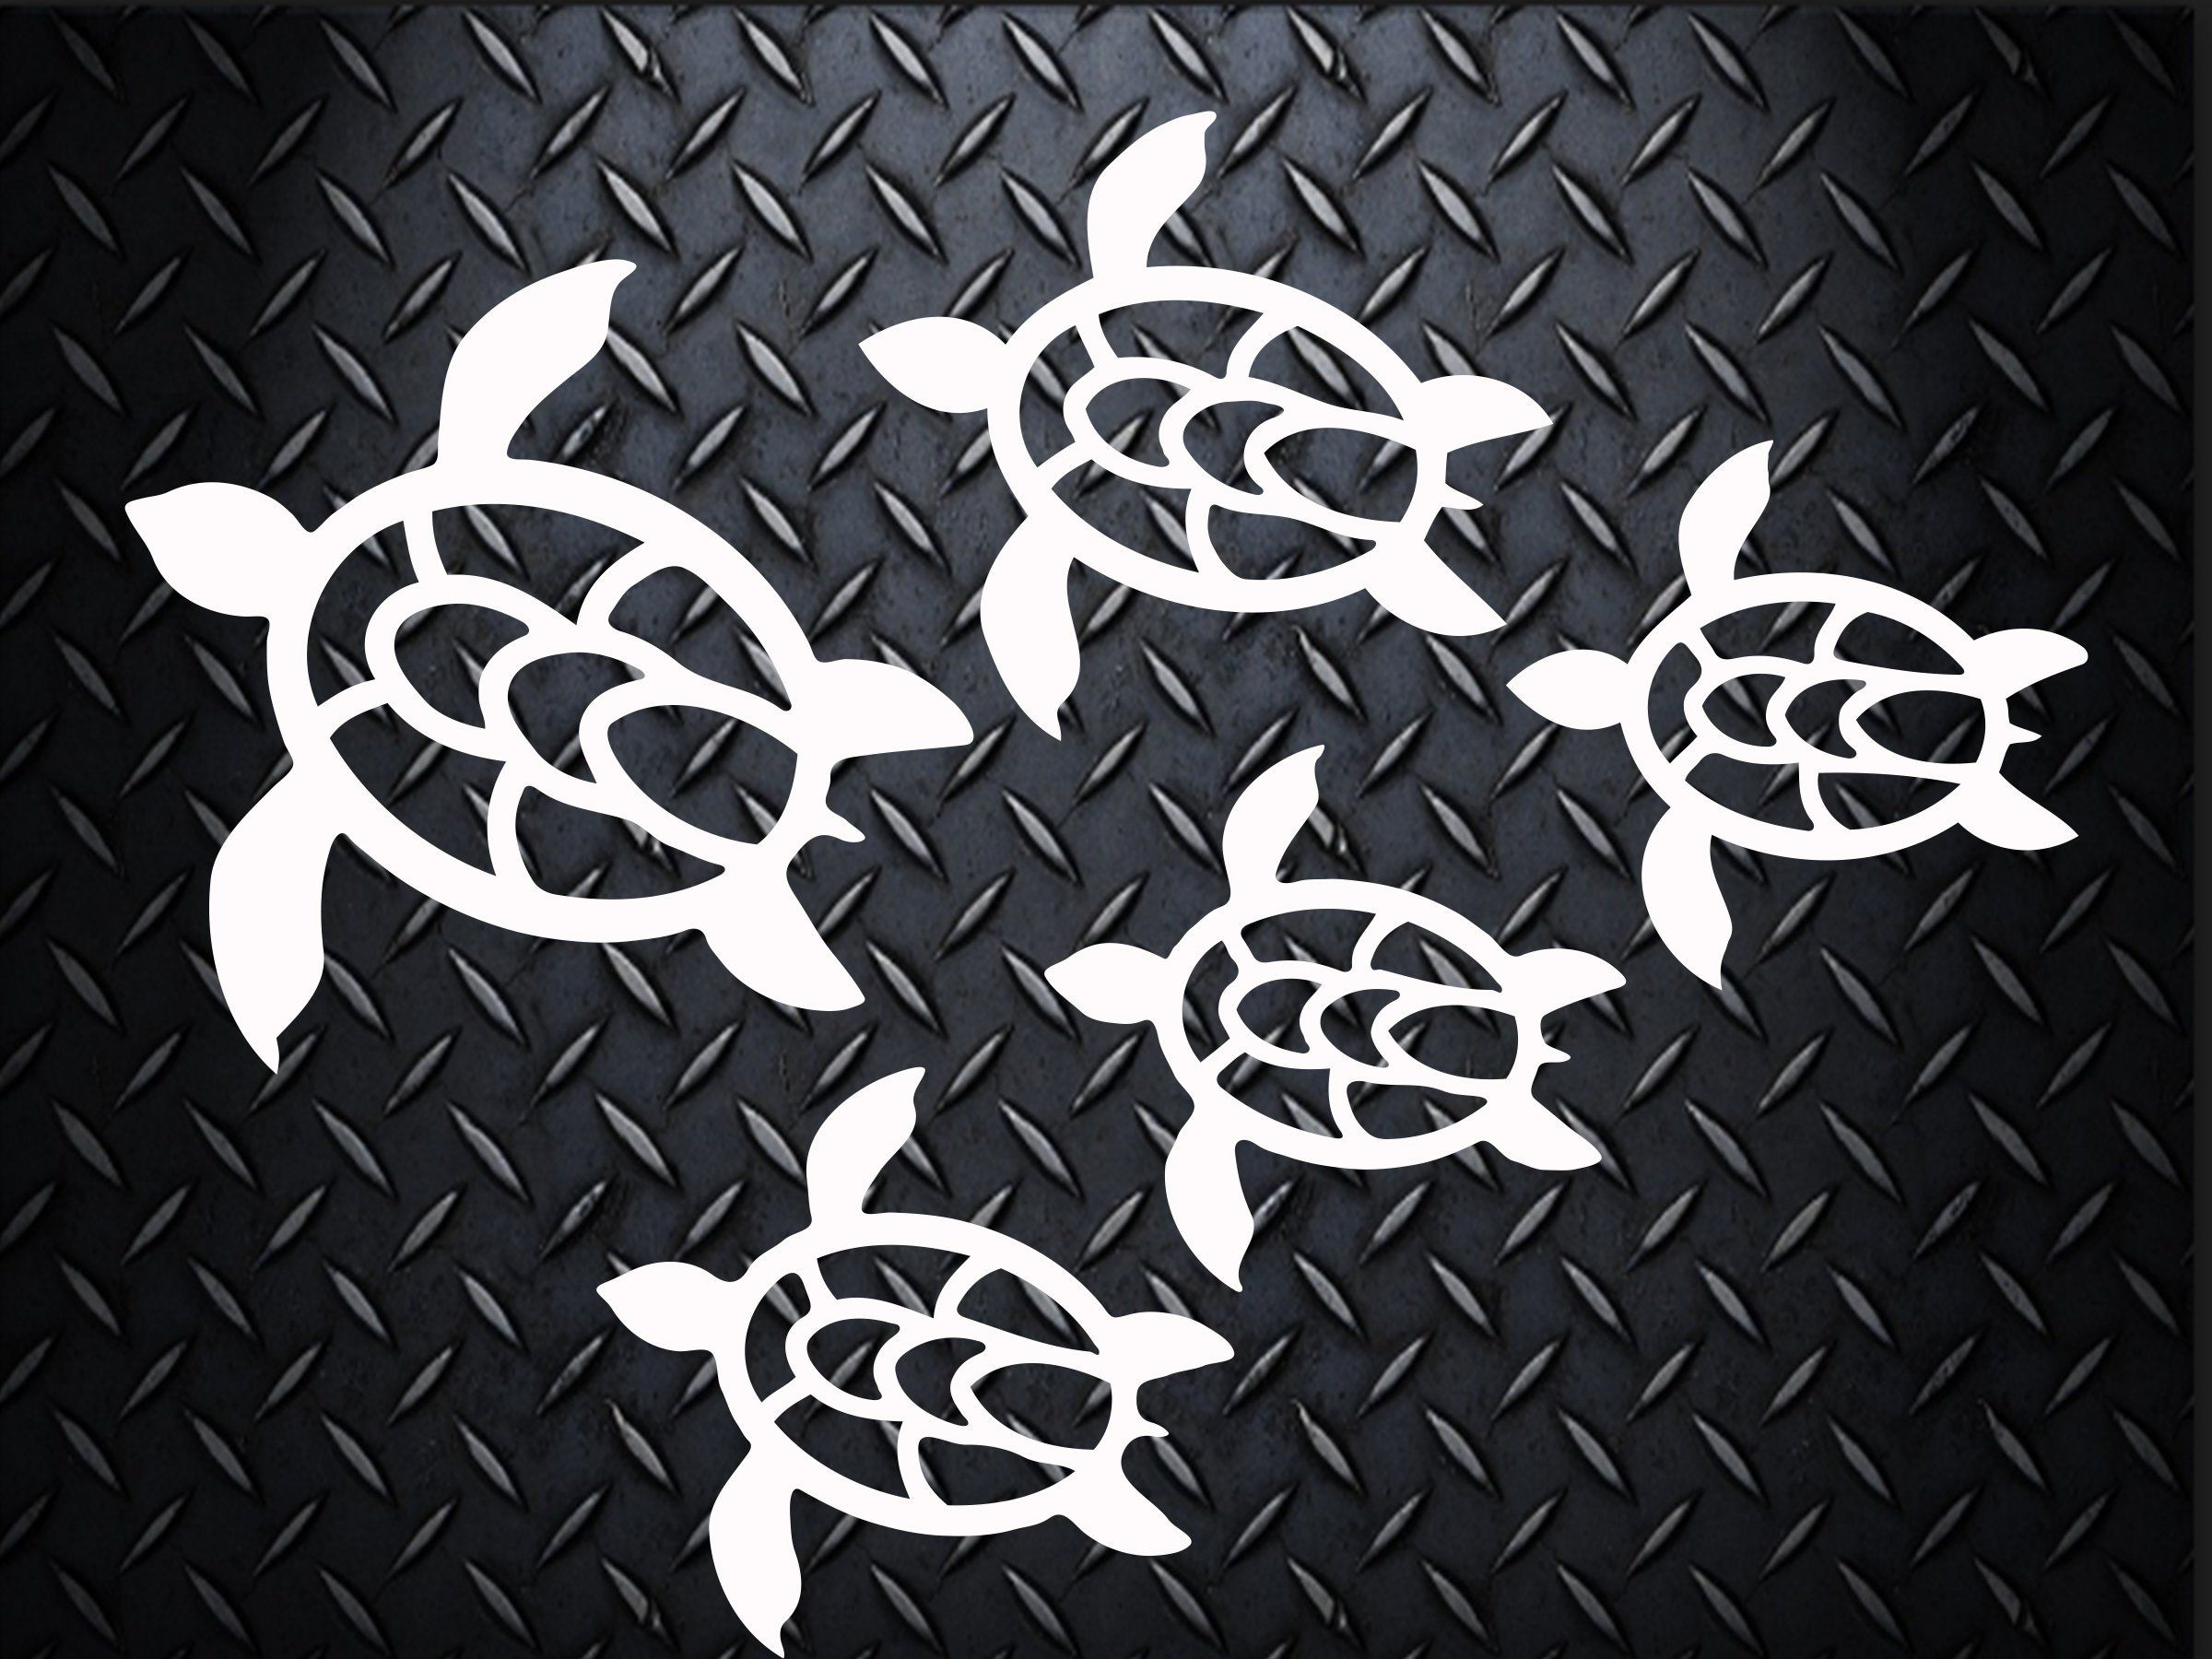 Hawaii Sea Turtle Family Decal 7 Inches By Veiledtrove On Etsy Trees Tree Wolves Wolftattoo Tatto Family Car Stickers Family Decals Cool Car Accessories [ 1800 x 2400 Pixel ]